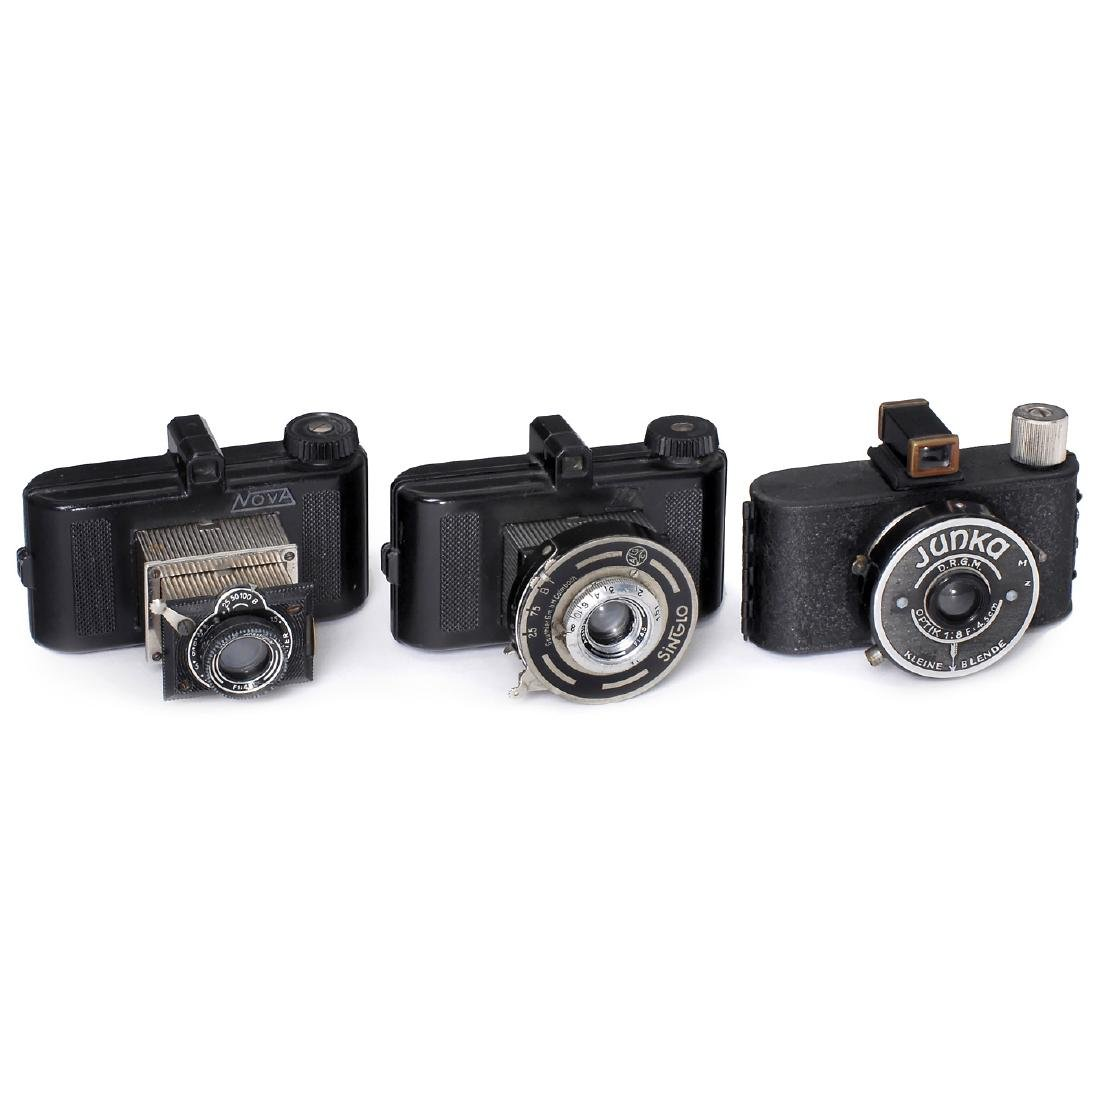 3 Subminiature Cameras: Nova, Tex and Junka